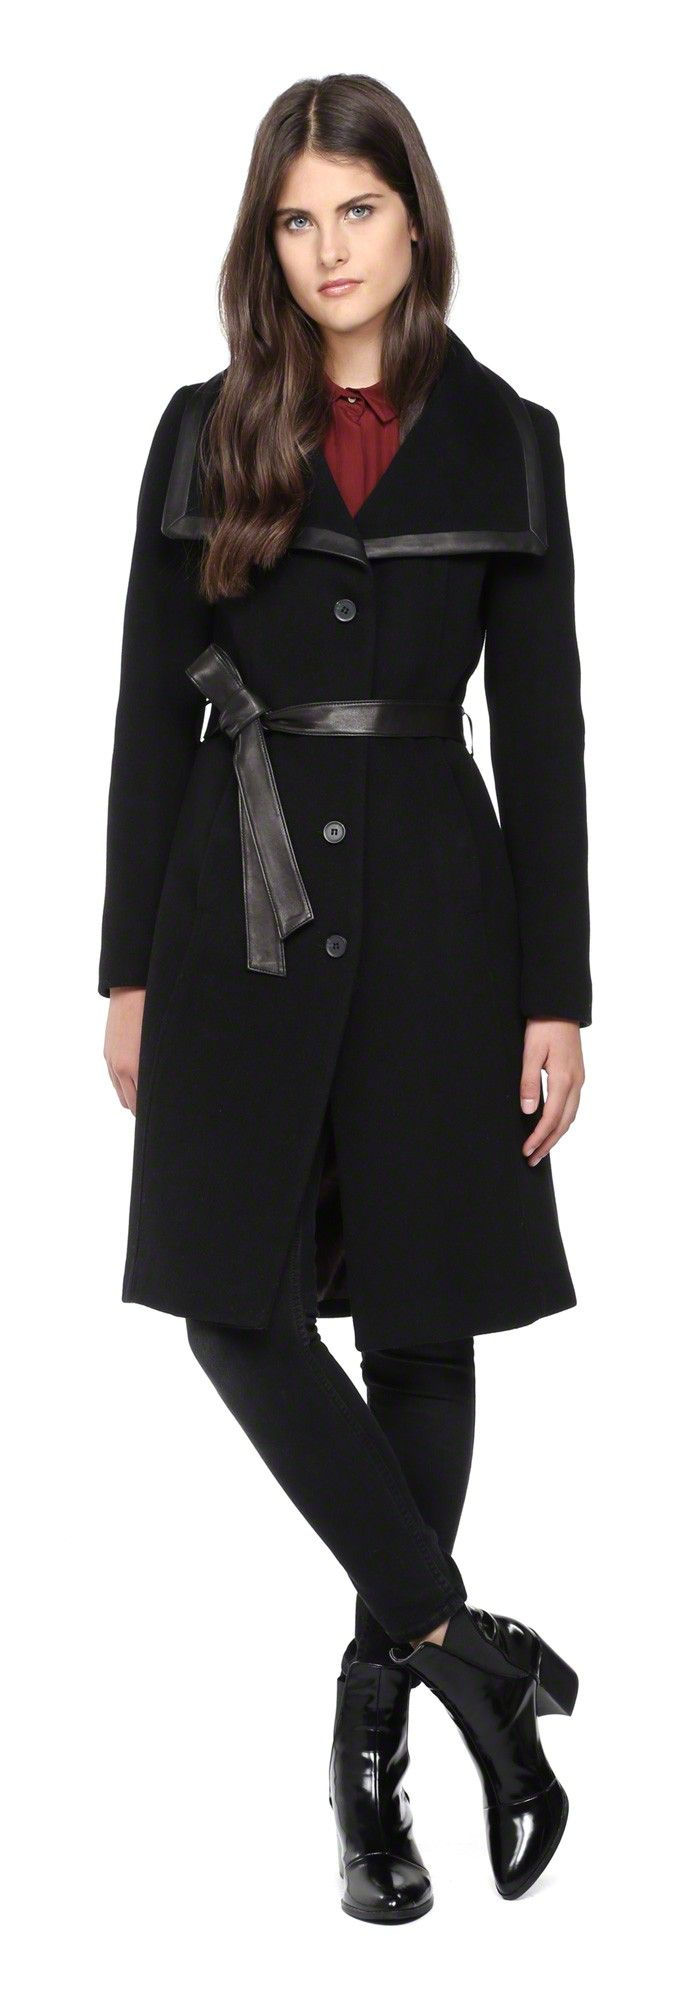 SOIA & KYO - VERLY-SP BLACK LONG WOOL WINTER COAT WITH LEATHER ...